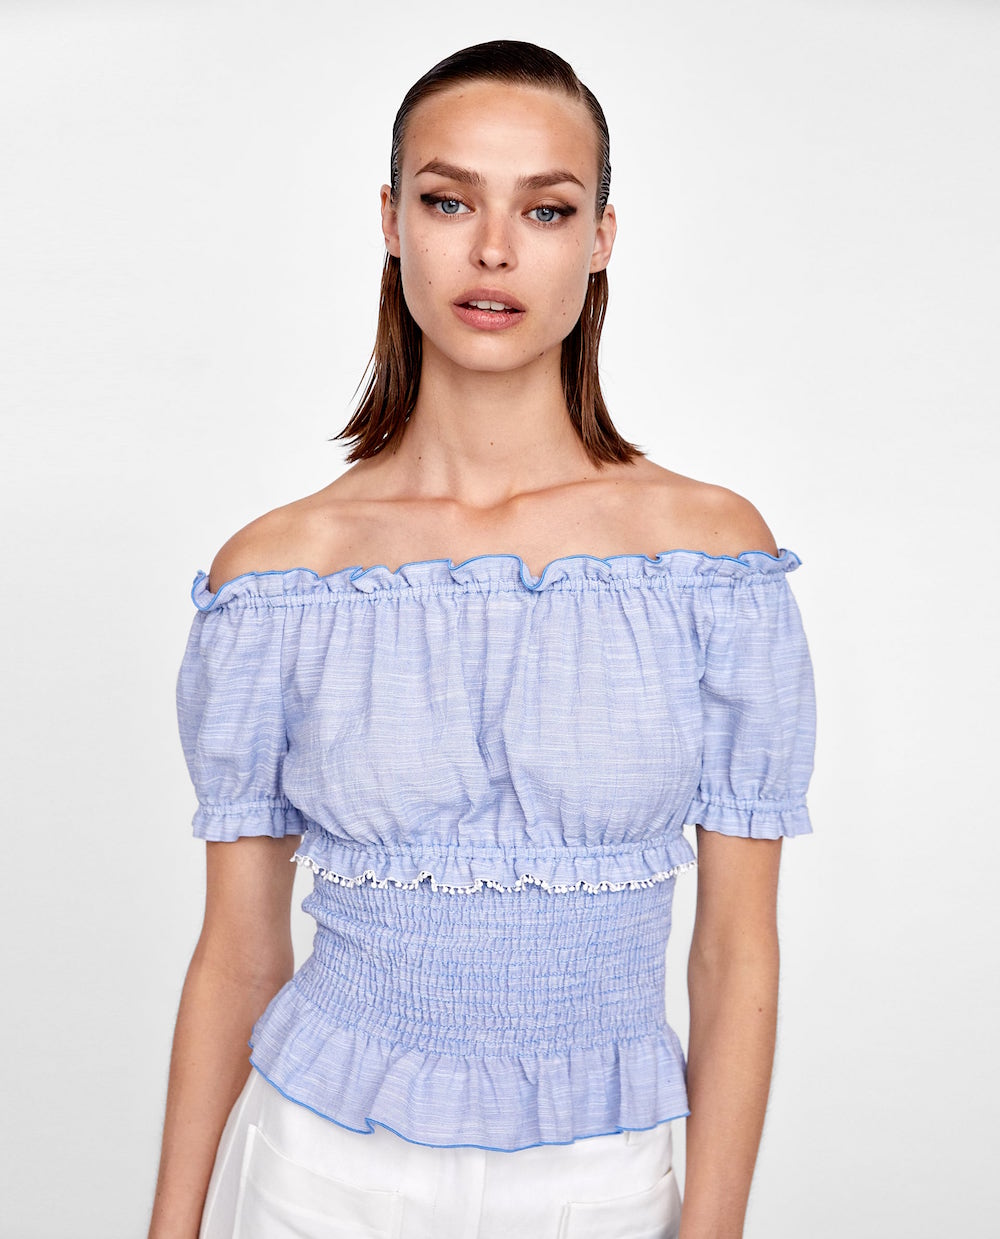 542e0836866 18 Smocked Tops to Rock This Summer - theFashionSpot